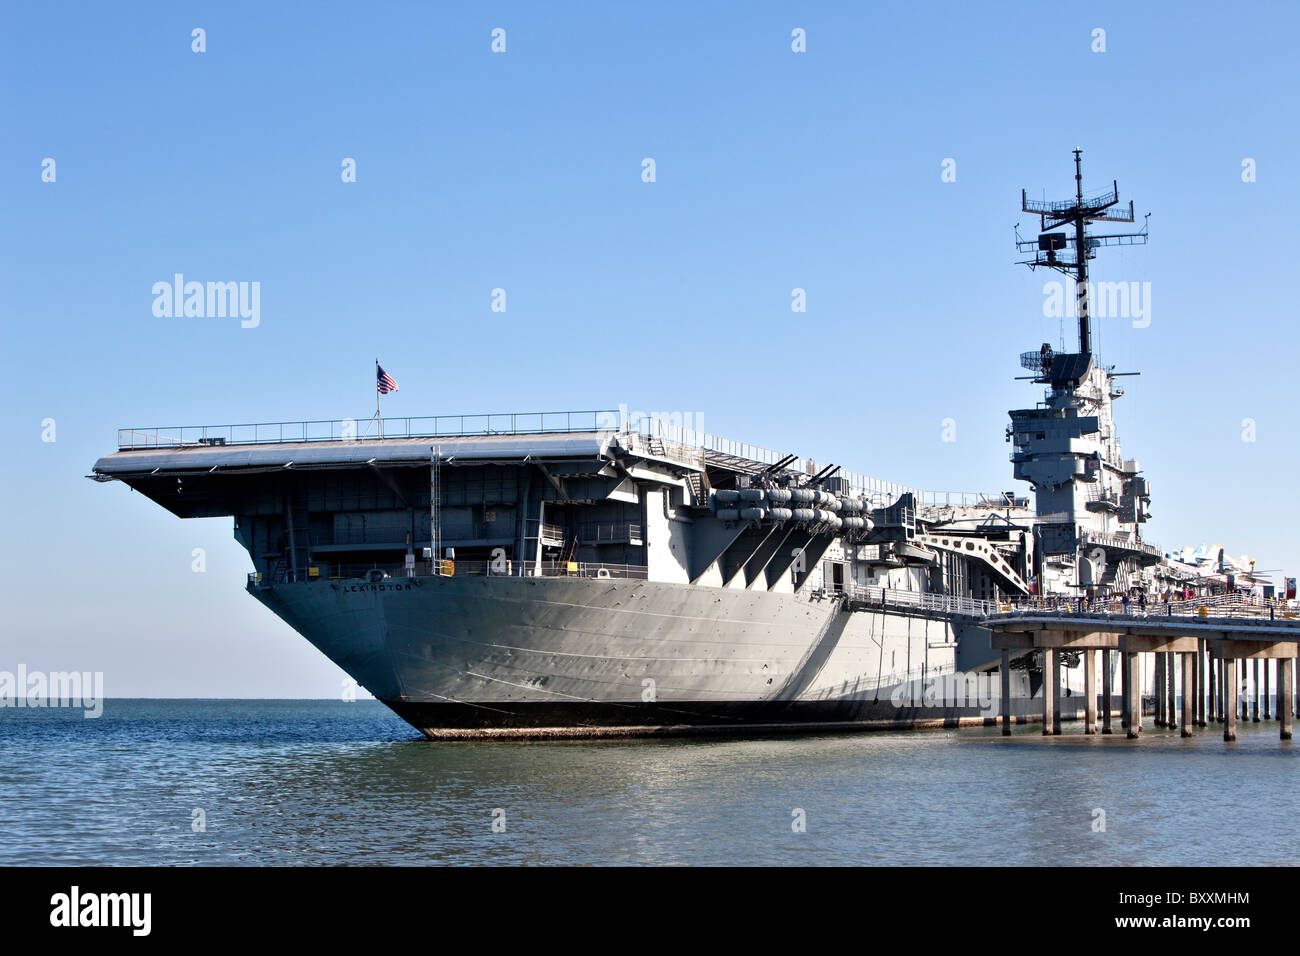 USS Lexington CV16, aircraft carrier, - Stock Image